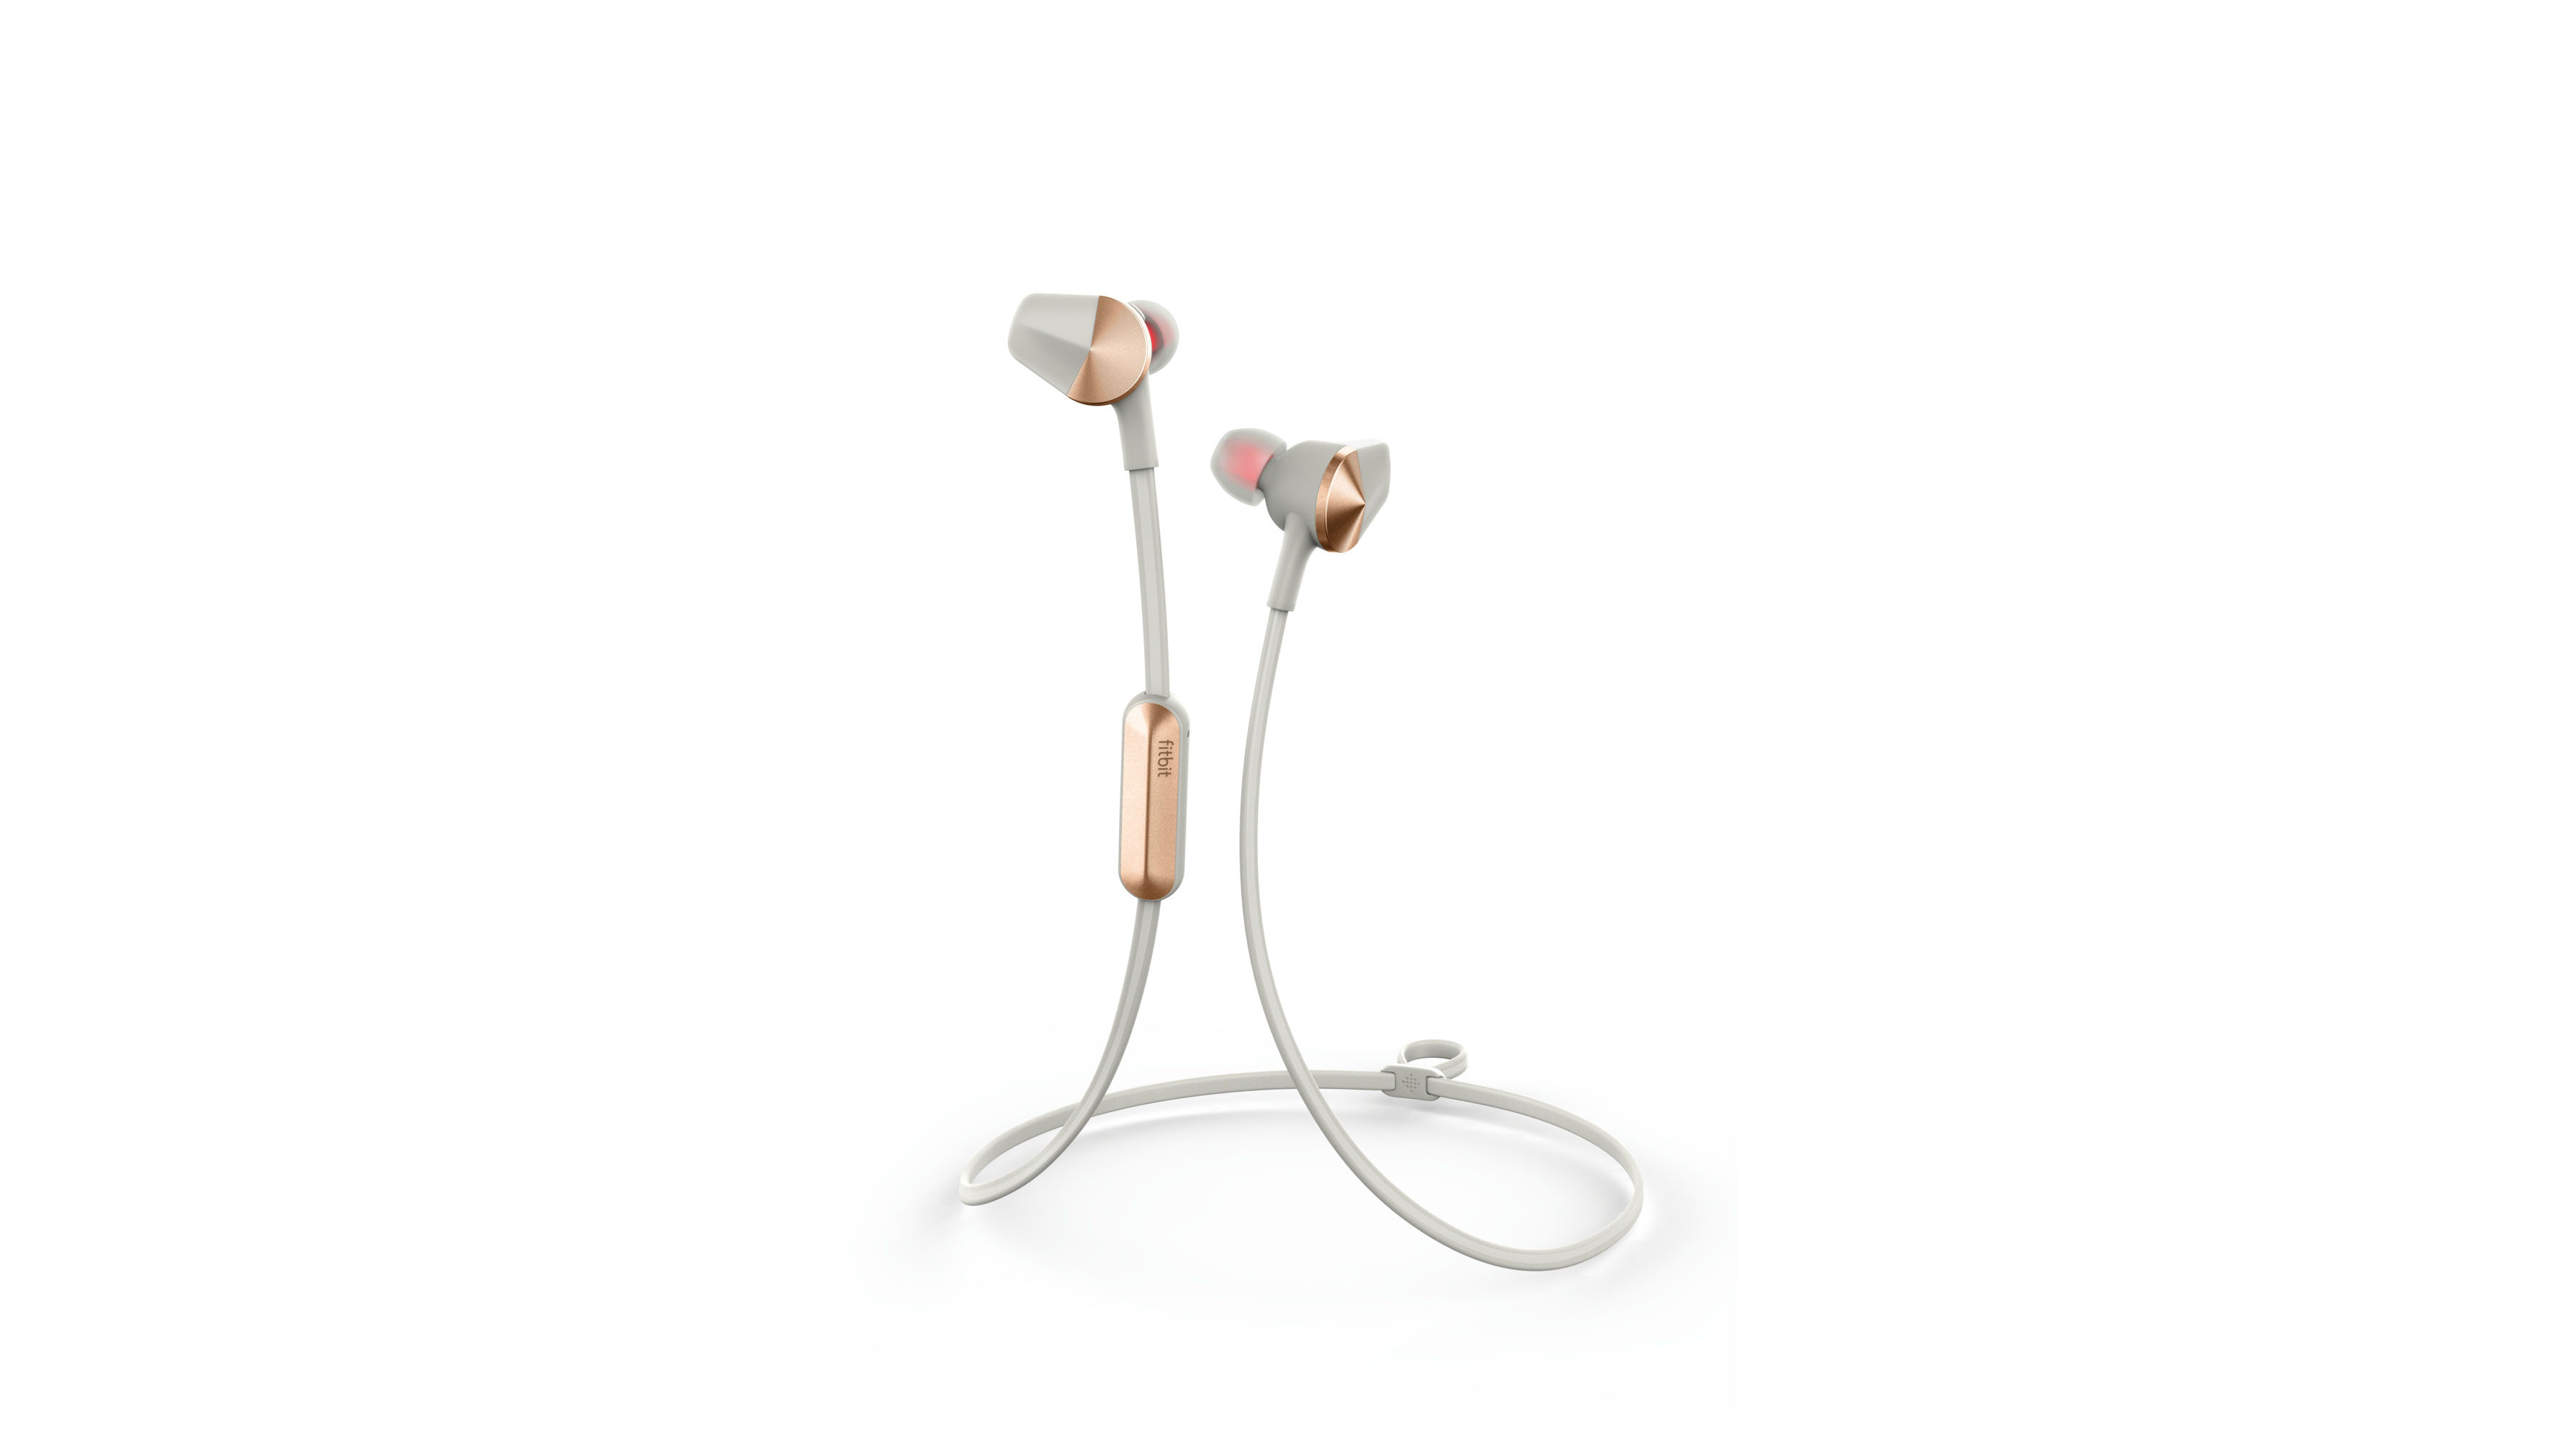 An image of the Fitbit Flyer headphones